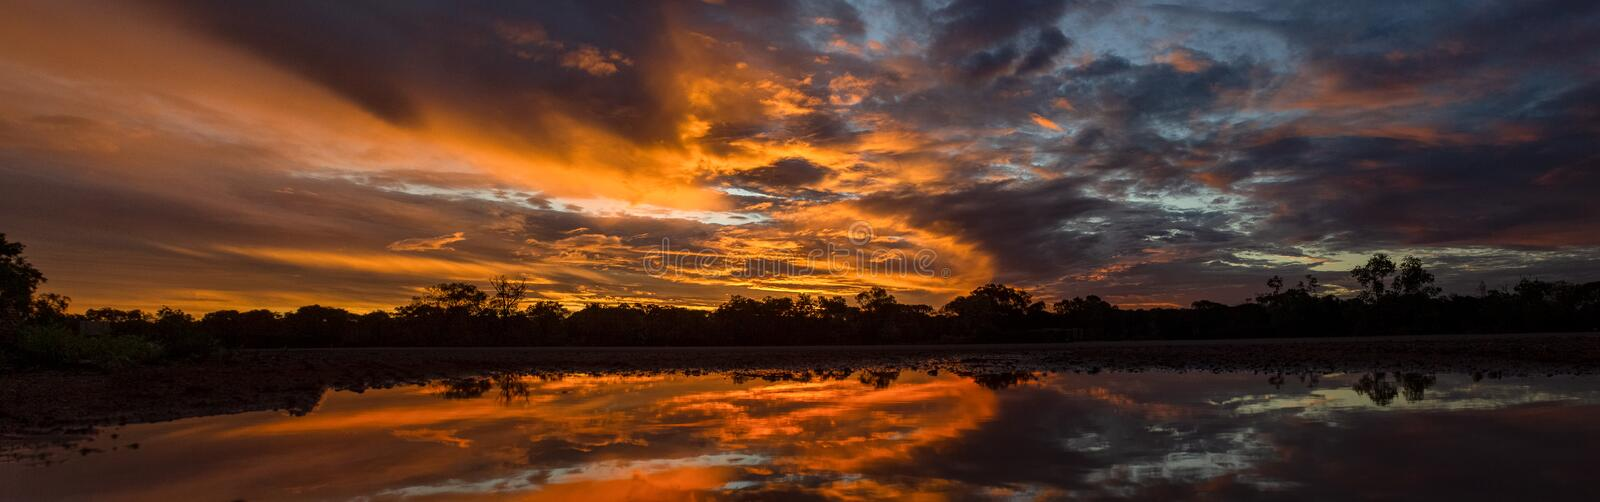 beautiful Panoramic sunset in the queensland outback 200 km north of cloncurry, queensland australia stock photography